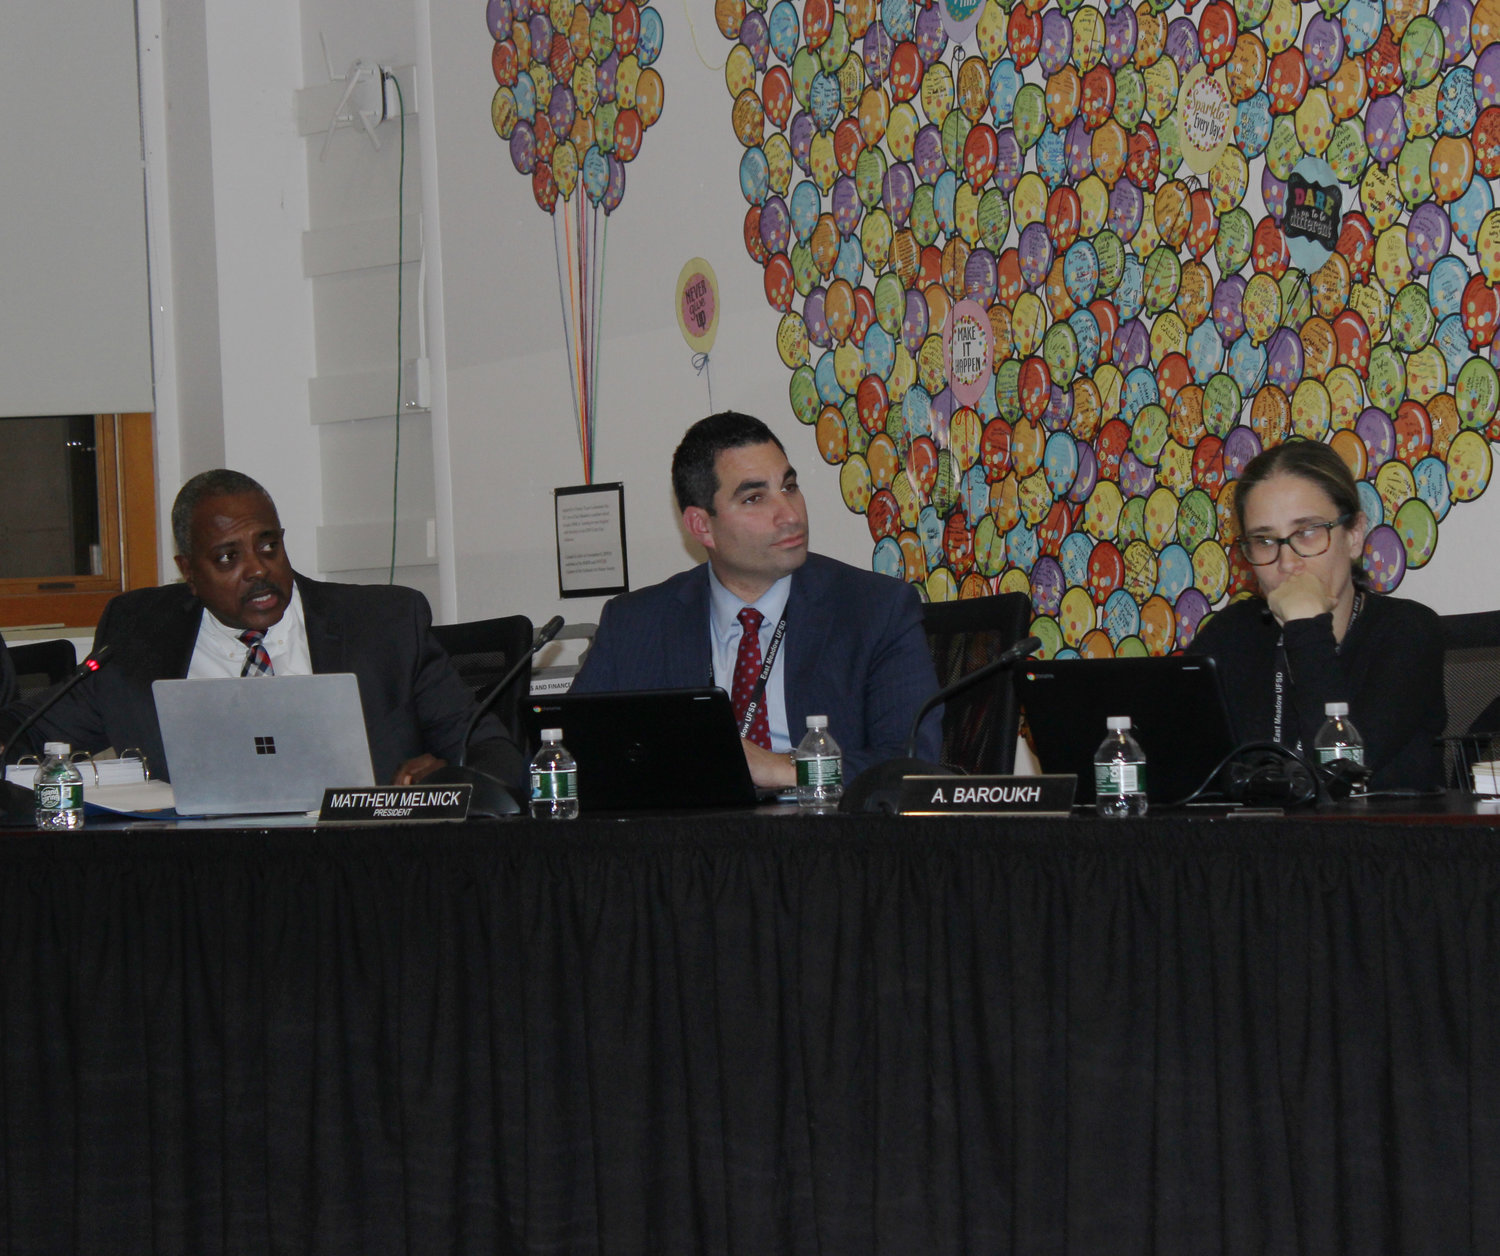 At a Board of Education meeting on Dec. 4, the district revisited the option of installing artificial-turf fields at East Meadow High School and the Leon J. Campo Salisbury Center, which is used by W.T. Clarke middle and high schools. From left were Superintendent Kenneth Card Jr., board President Matthew Melnick and Vice President Alisa Baroukh.